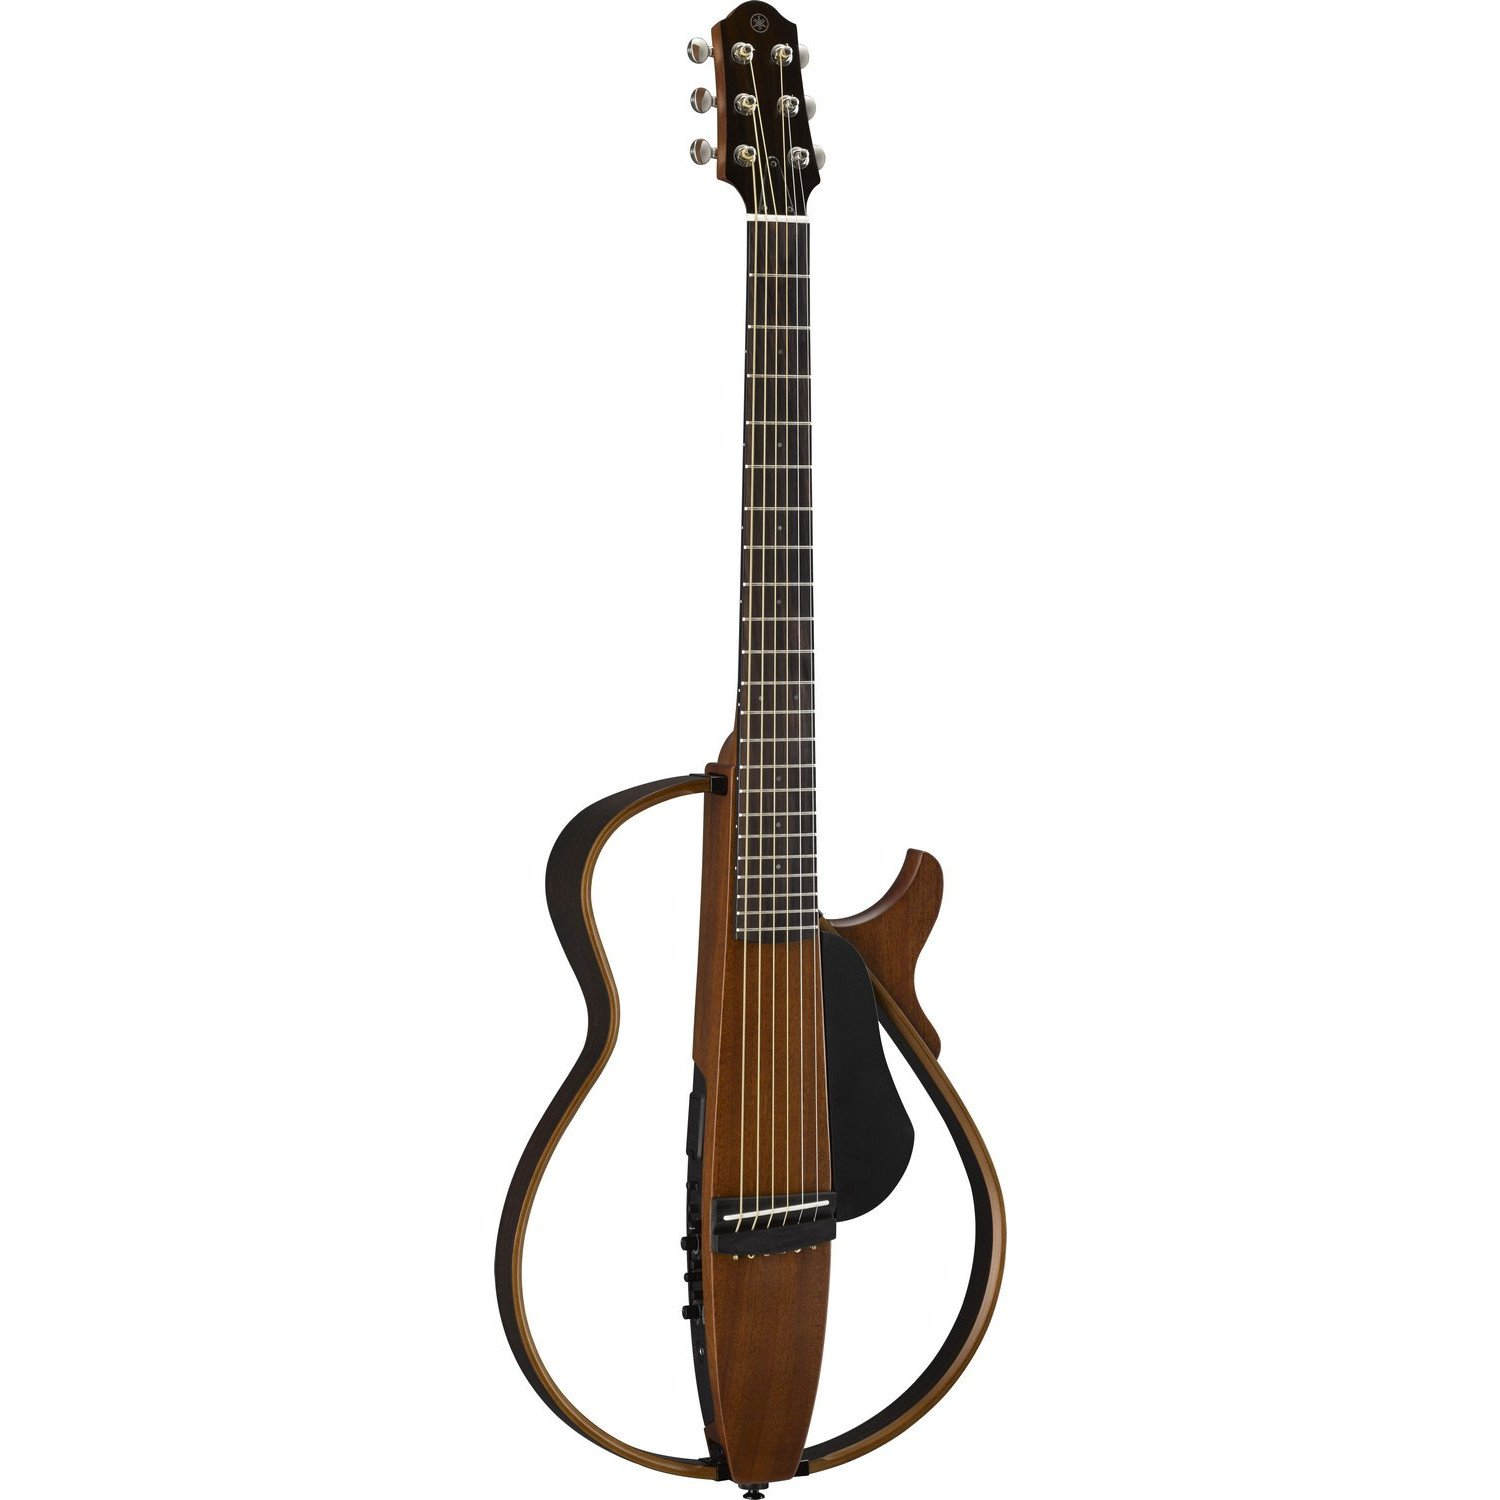 fathers day gift, Yamha SLG200S silent guitar